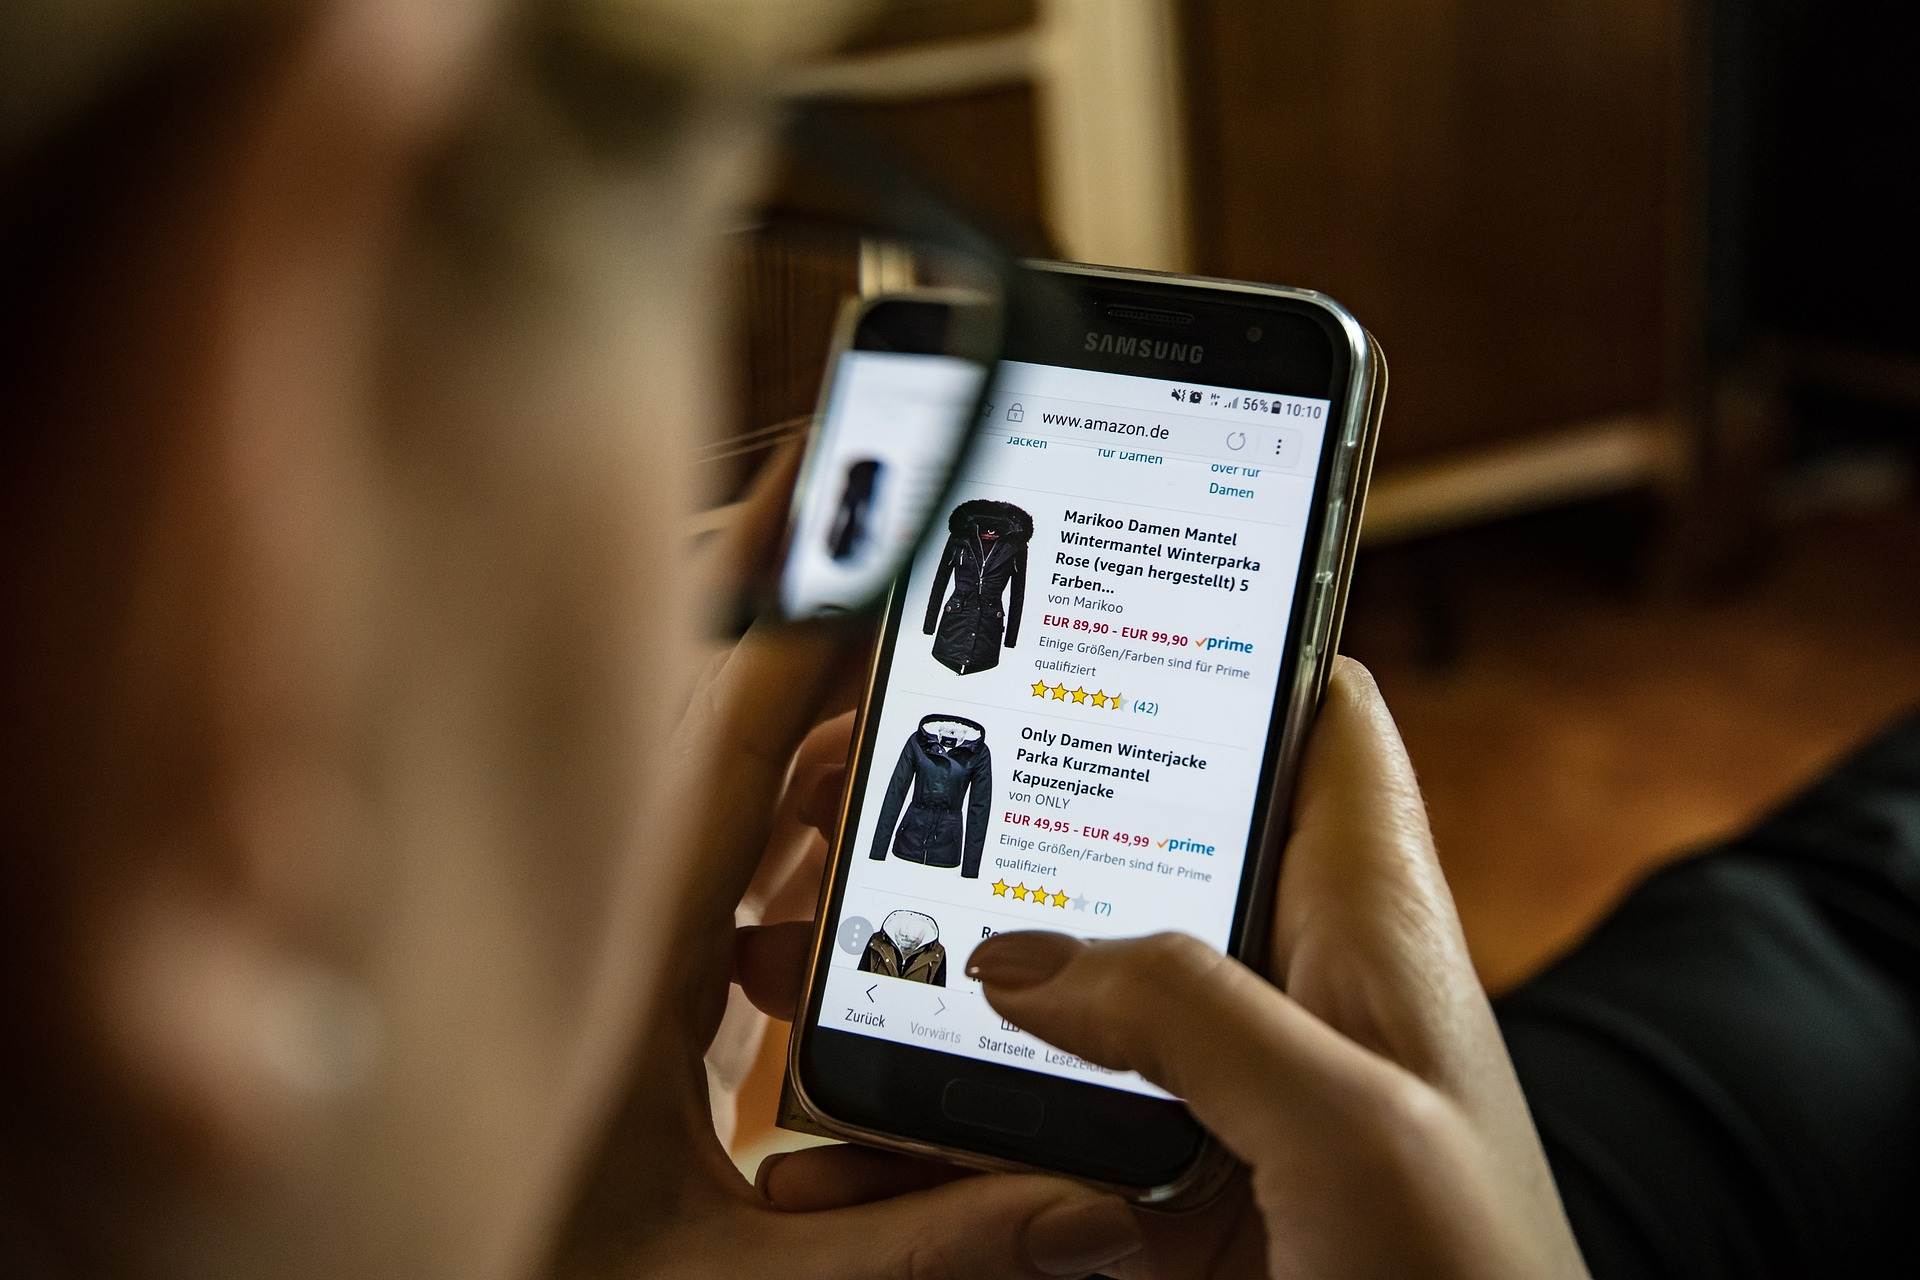 Retail Marketing, AI-based recommendations